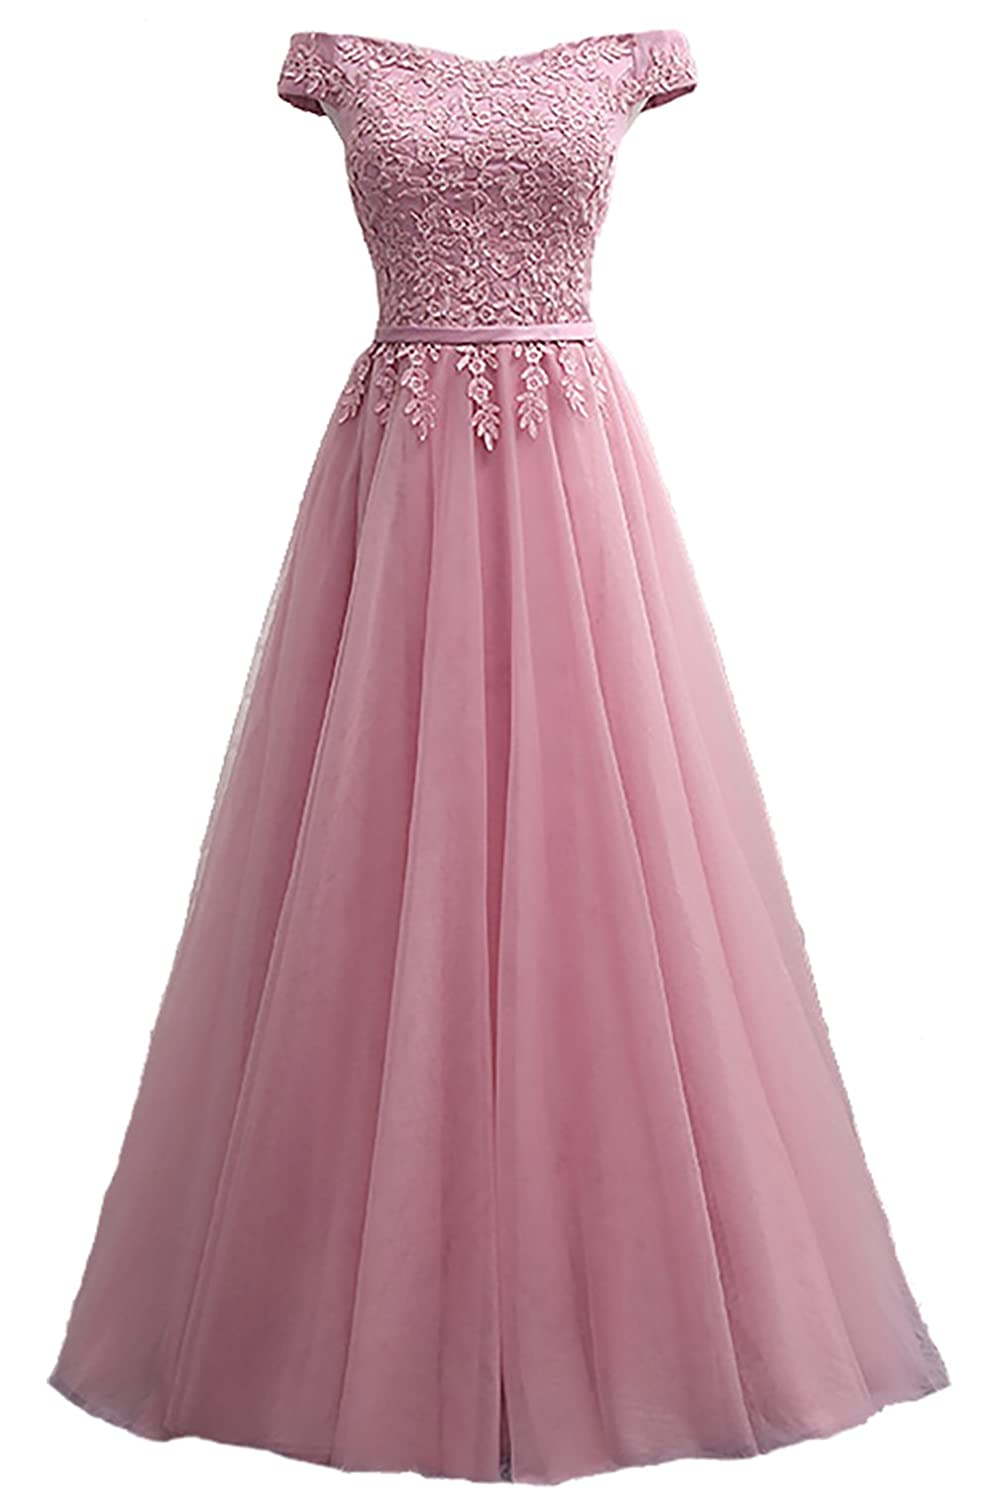 4e6e4062ae7e Callmelady Lace Evening Dresses for Women Formal Elegant Prom Gowns 2019 at  Amazon Women s Clothing store